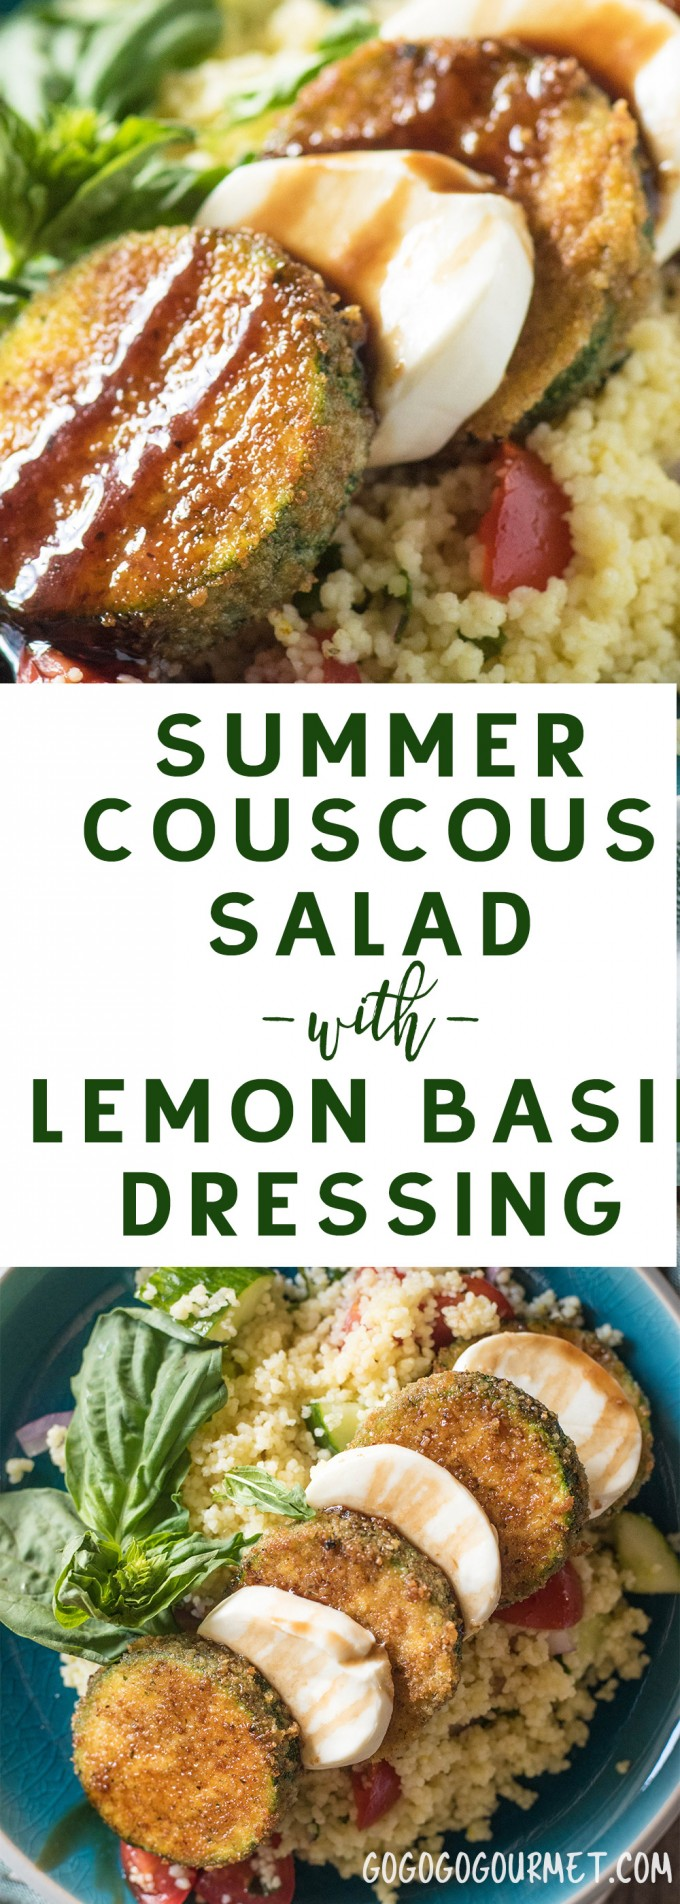 This Summer Couscous Salad with Lemon Basil Dressing is a crisp pasta salad with a tangy dressing. Topping it off with Pan Fried Zucchini and Mozzarella transforms it into a light lunch or dinner!